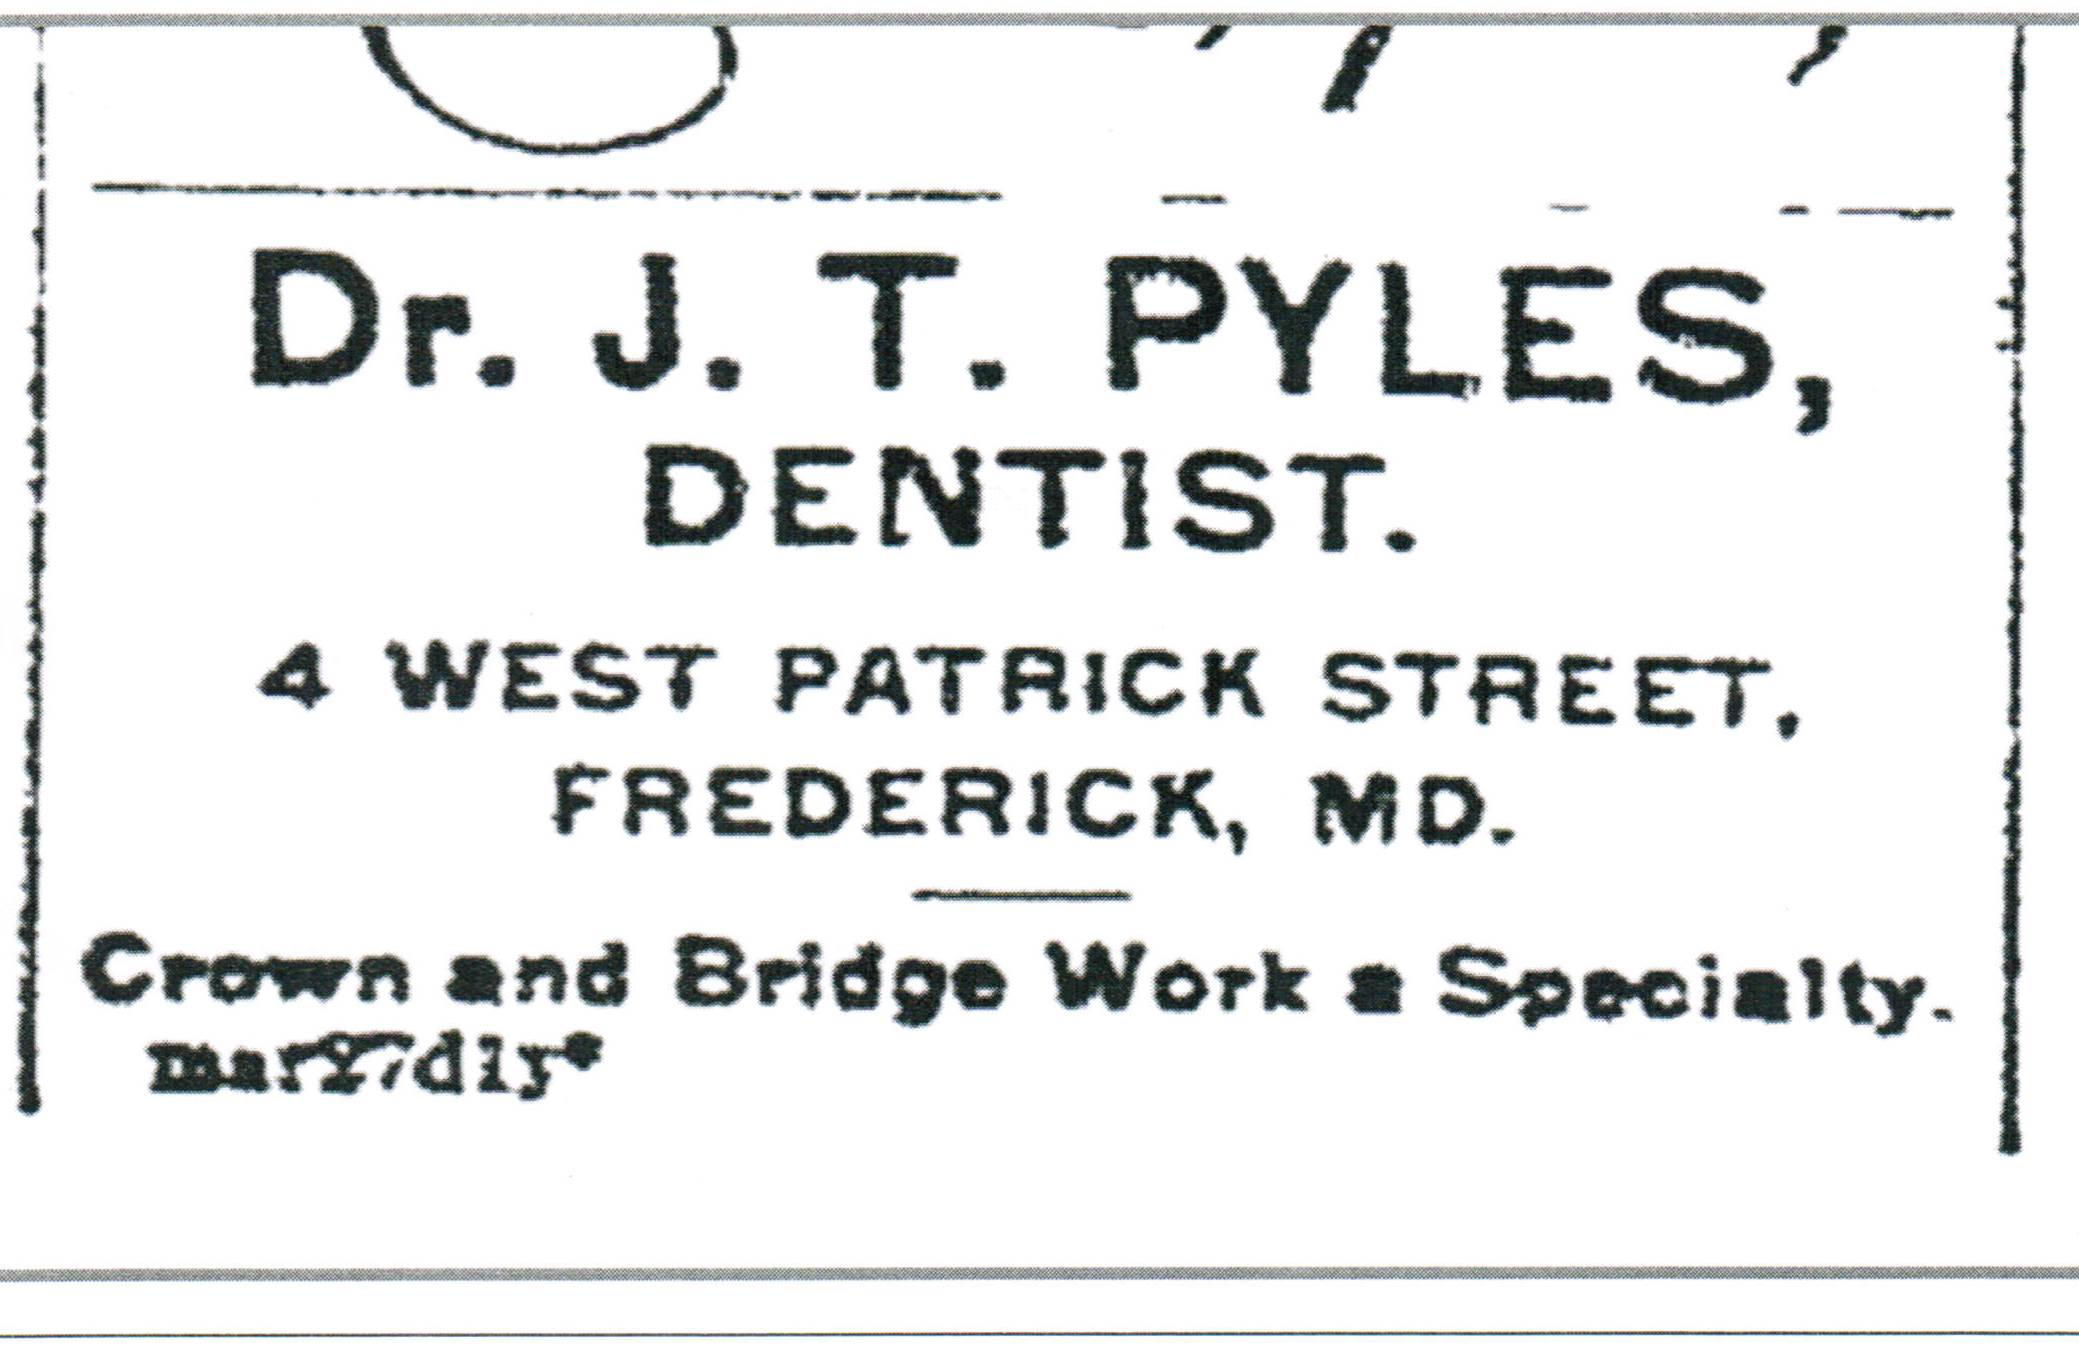 52 Ancestors Week 45 – Joseph Pyles: beloved dentist and more